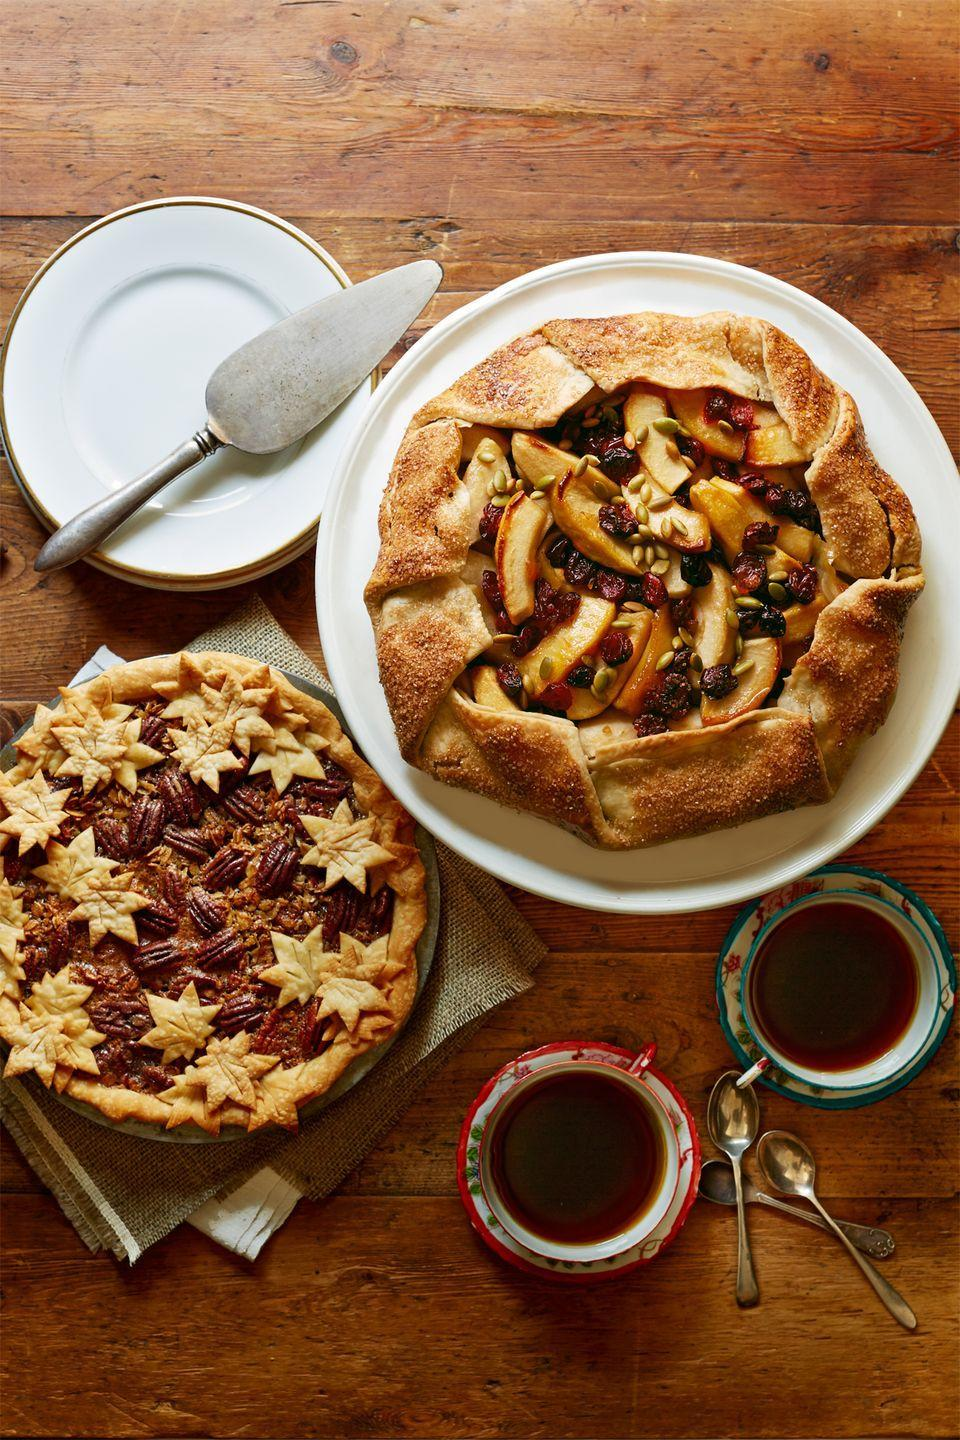 "<p>Spread fall cheer by delivering a freshly baked dessert to a neighbor in need.</p><p><strong>Get the recipes for </strong><a href=""https://www.countryliving.com/food-drinks/recipes/a5863/granola-pecan-pie-recipe-clx1114/"" rel=""nofollow noopener"" target=""_blank"" data-ylk=""slk:Maple Granola Pecan Pie"" class=""link rapid-noclick-resp""><strong>Maple Granola Pecan Pie</strong></a><em> <strong>(left) </strong></em><strong>and</strong> <strong><a href=""https://www.countryliving.com/food-drinks/recipes/a5859/apples-crostata-recipe-clx1114/"" rel=""nofollow noopener"" target=""_blank"" data-ylk=""slk:Apple Crostata"" class=""link rapid-noclick-resp"">Apple Crostata</a>.</strong></p>"